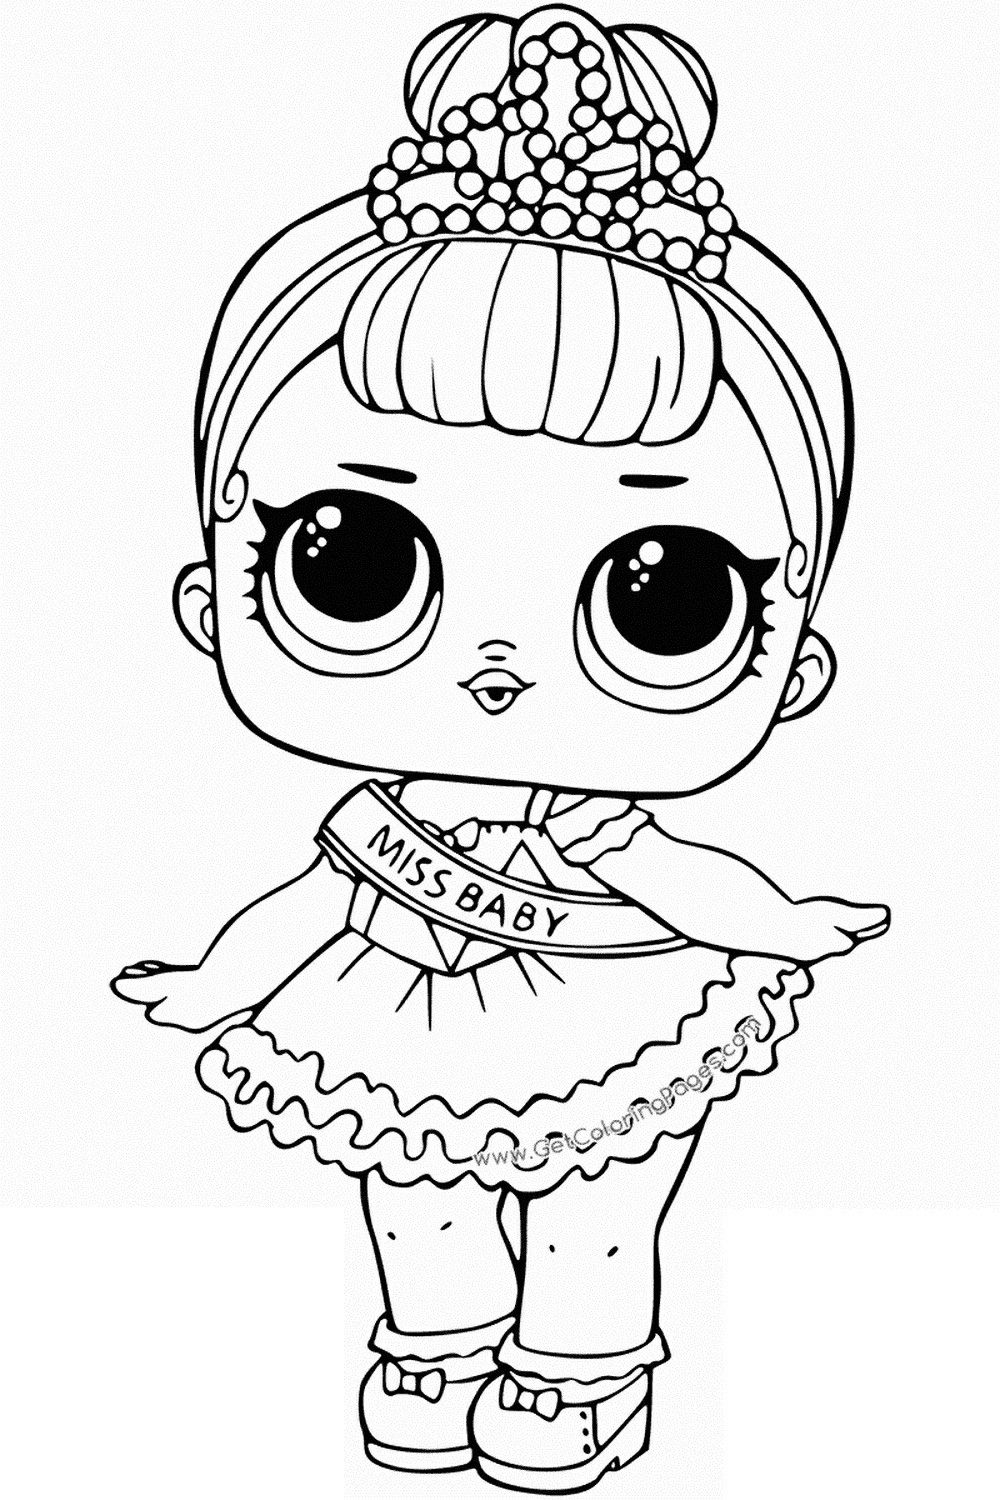 Pin By Sylvinha Alencar On Printables Cute Coloring Pages Coloring Pages Lol Dolls